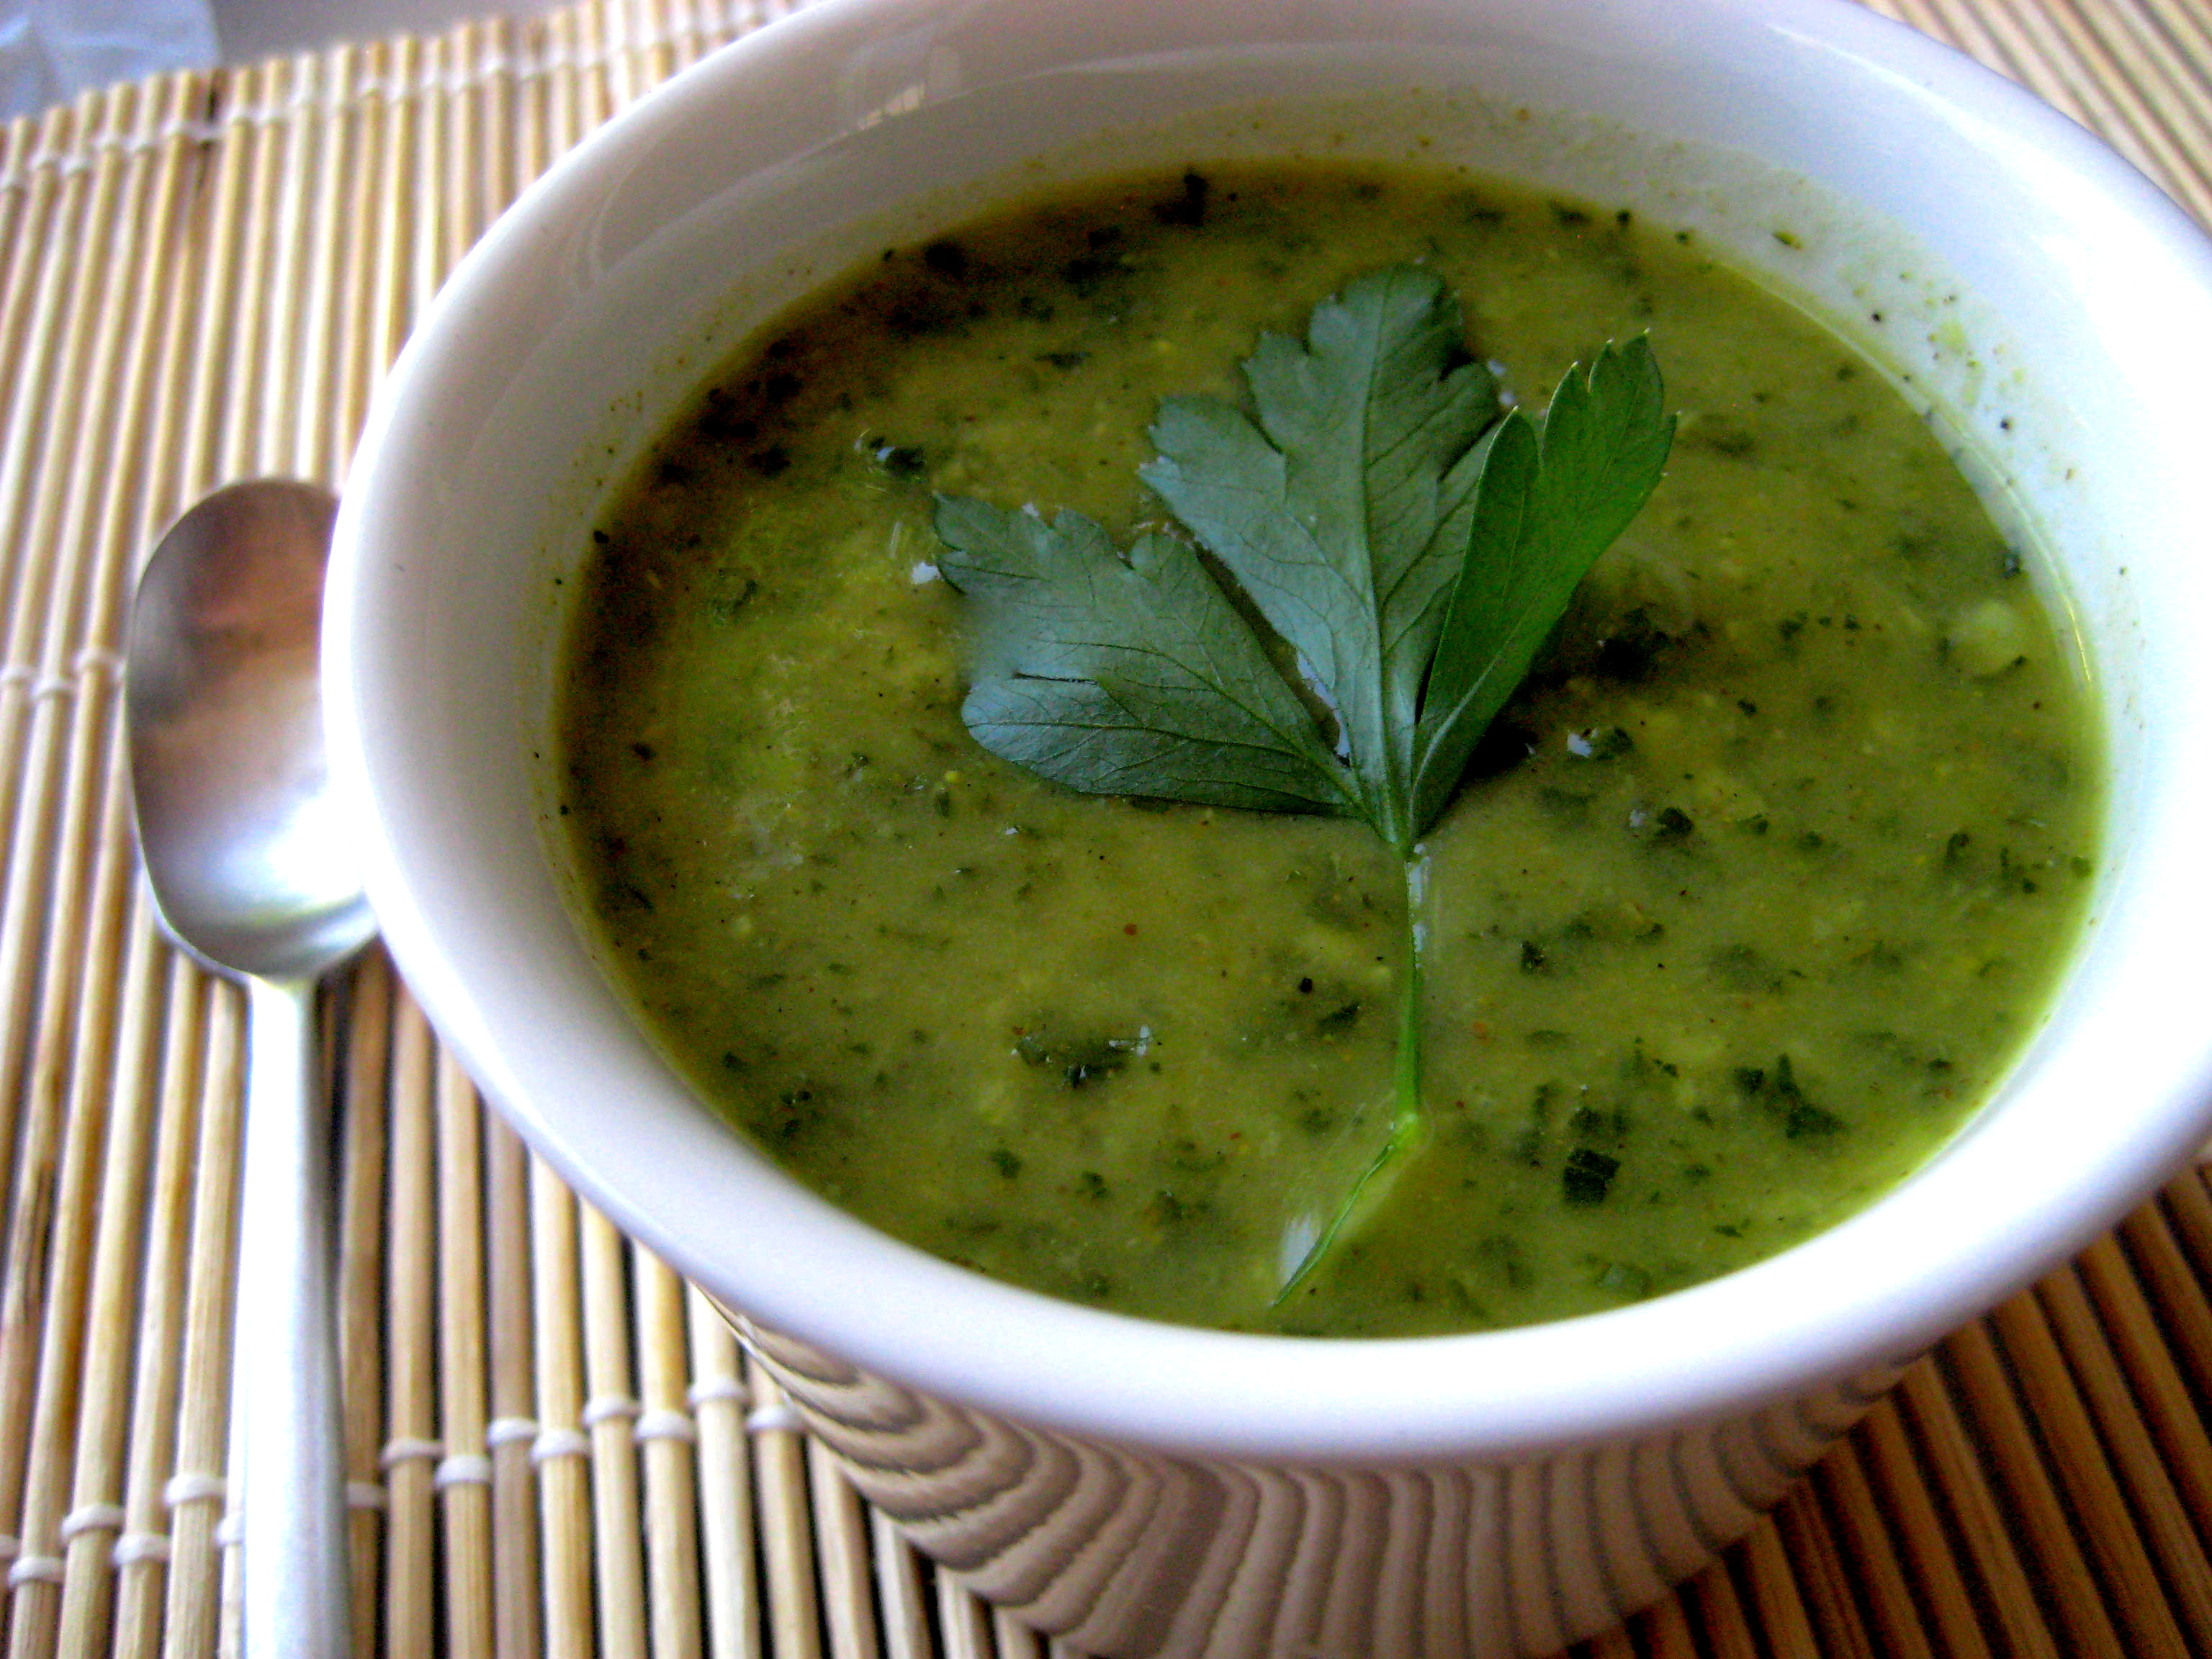 Curried Zucchini and Kale Soup [gluten-free, vegan, soy-free]